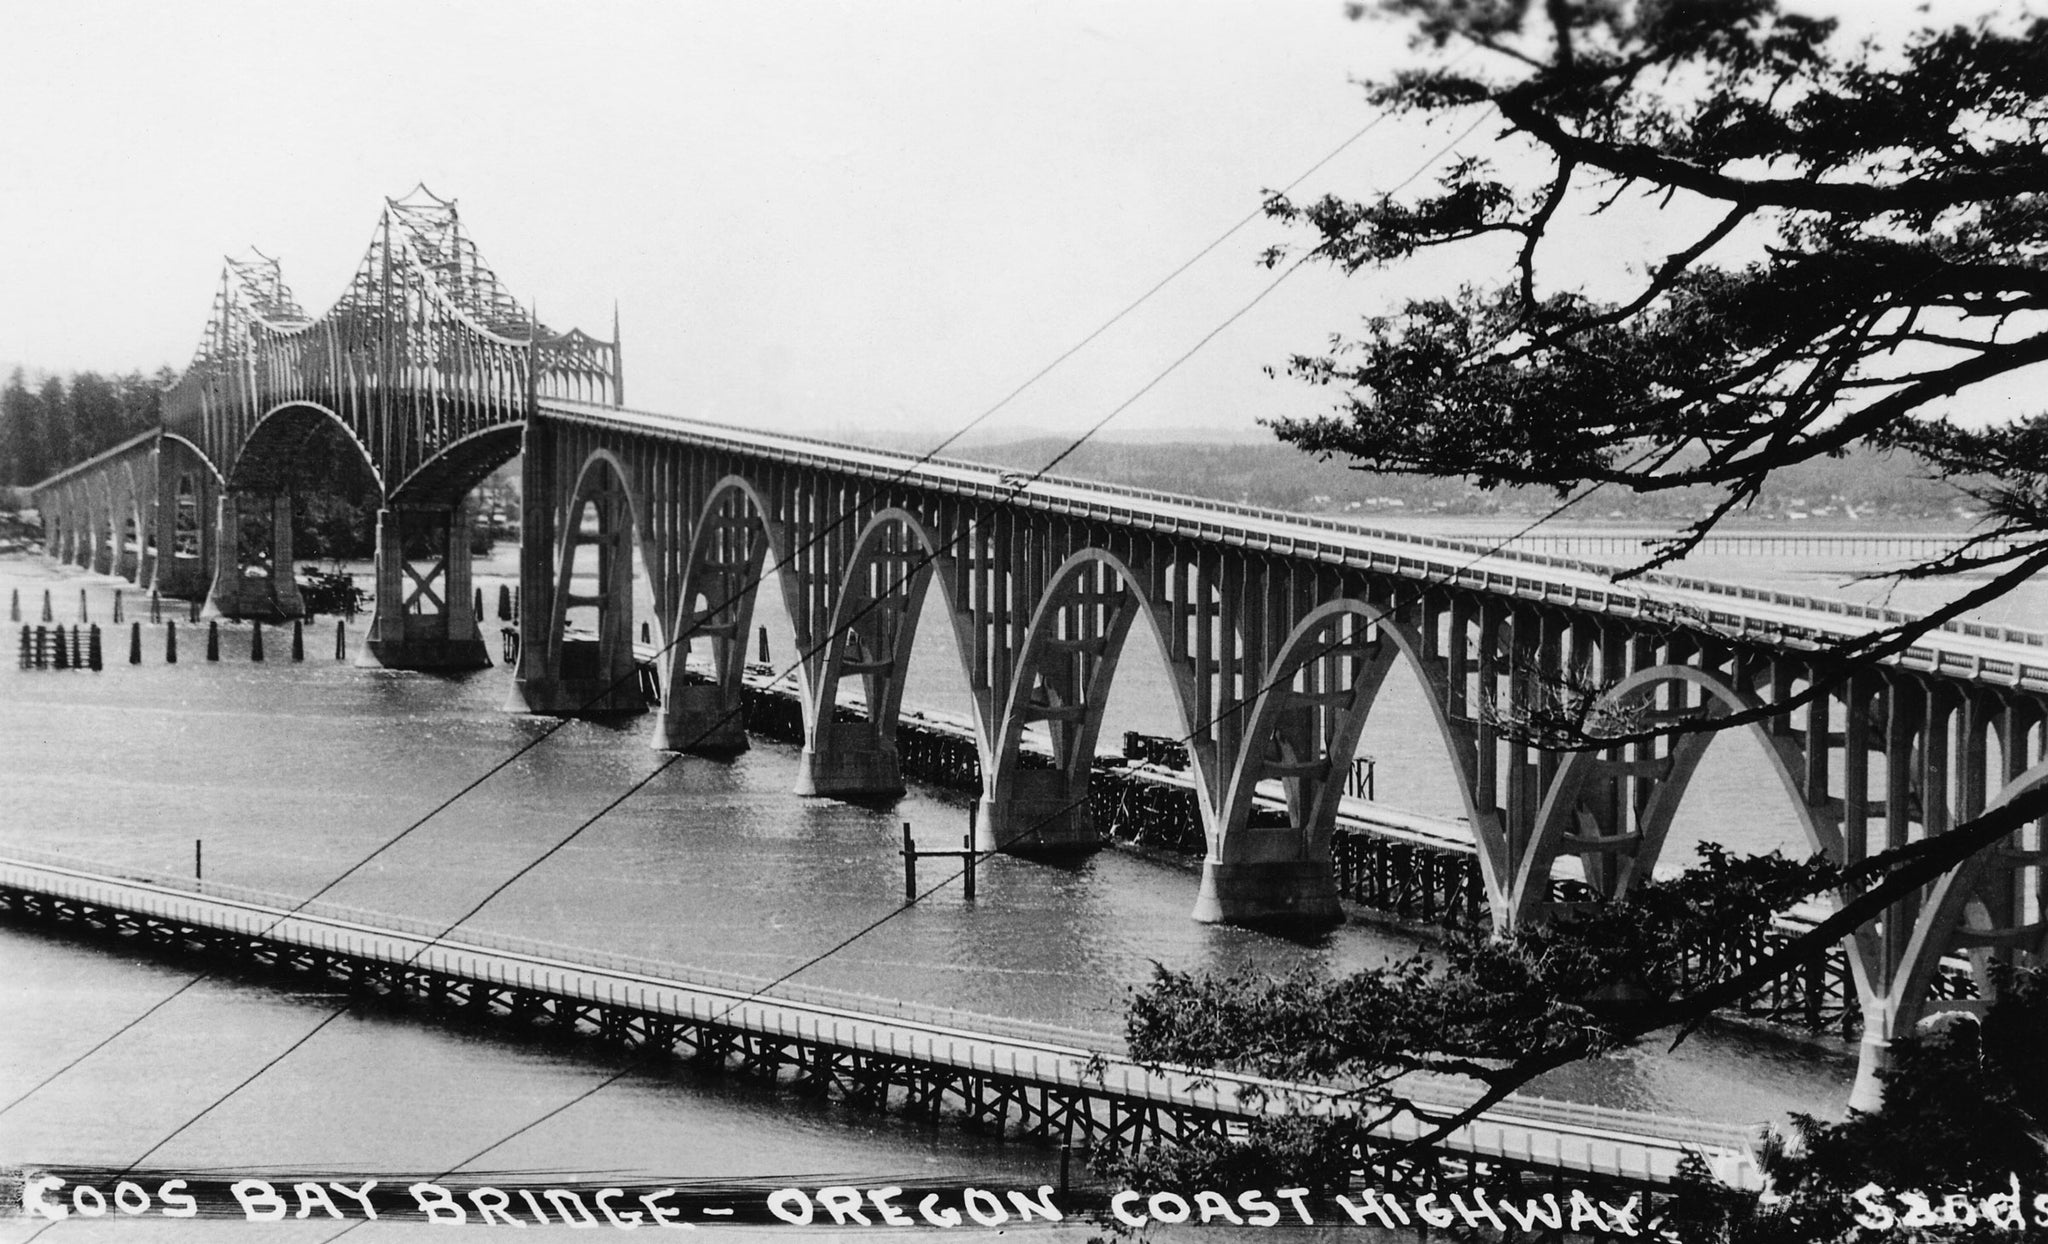 These photos of the completed Coos Bay Bridge in North Bend were both taken from un-mailed and undated postcards from the archives of the Coos History Museum. The photos likely date sometime shortly after completion of the span in 1936. The bridge, extending U.S. Route 101 through North Bend, was renamed the Conde B. McCullough Memorial Bridge in 1947 for its designer. The project was funded largely by the Depression-era Public Works Administration. The bridge was placed on the National Register of Historic Places in 2005. -- COOS HISTORY MUSEUM & MARITIME COLLECTION / 986-14.2